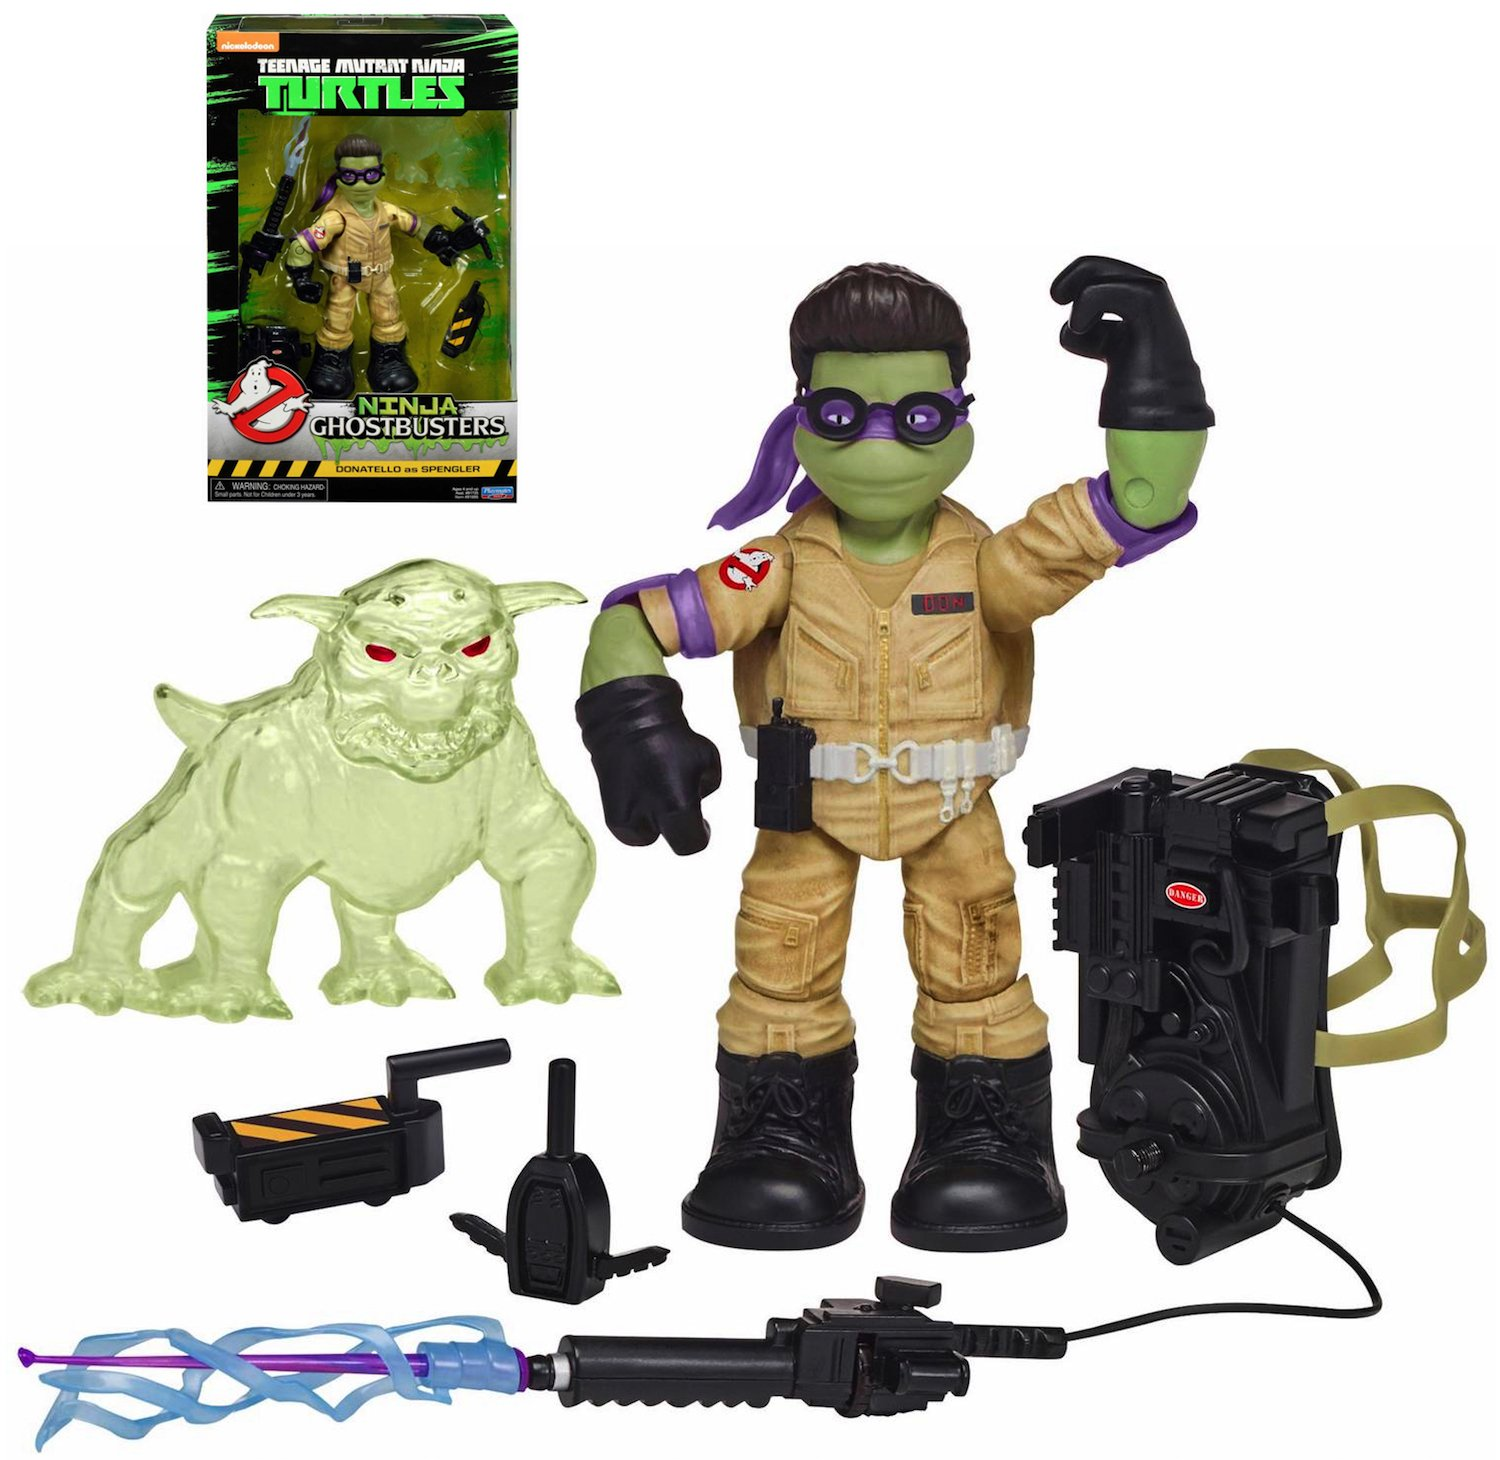 Amazon.com: Ninja Ghostbusters Donatello as Spengler Action ...